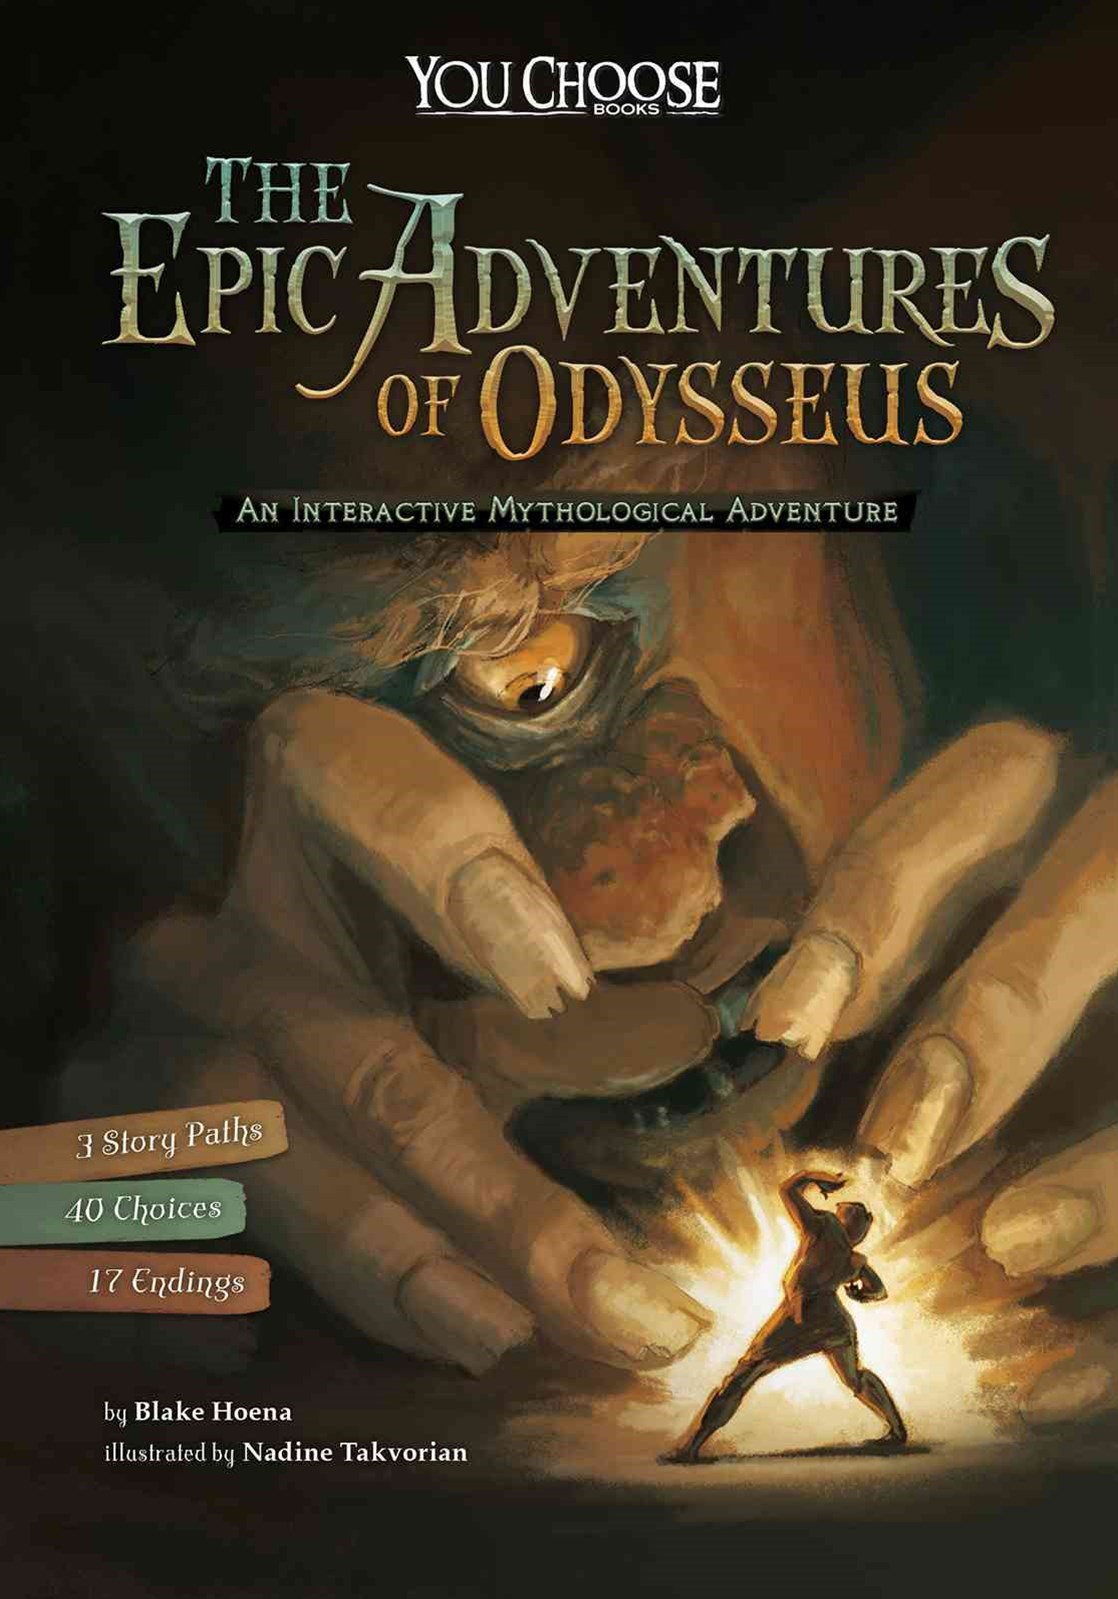 Epic Adventures of Odysseus: An Interactive Mythological Adventure